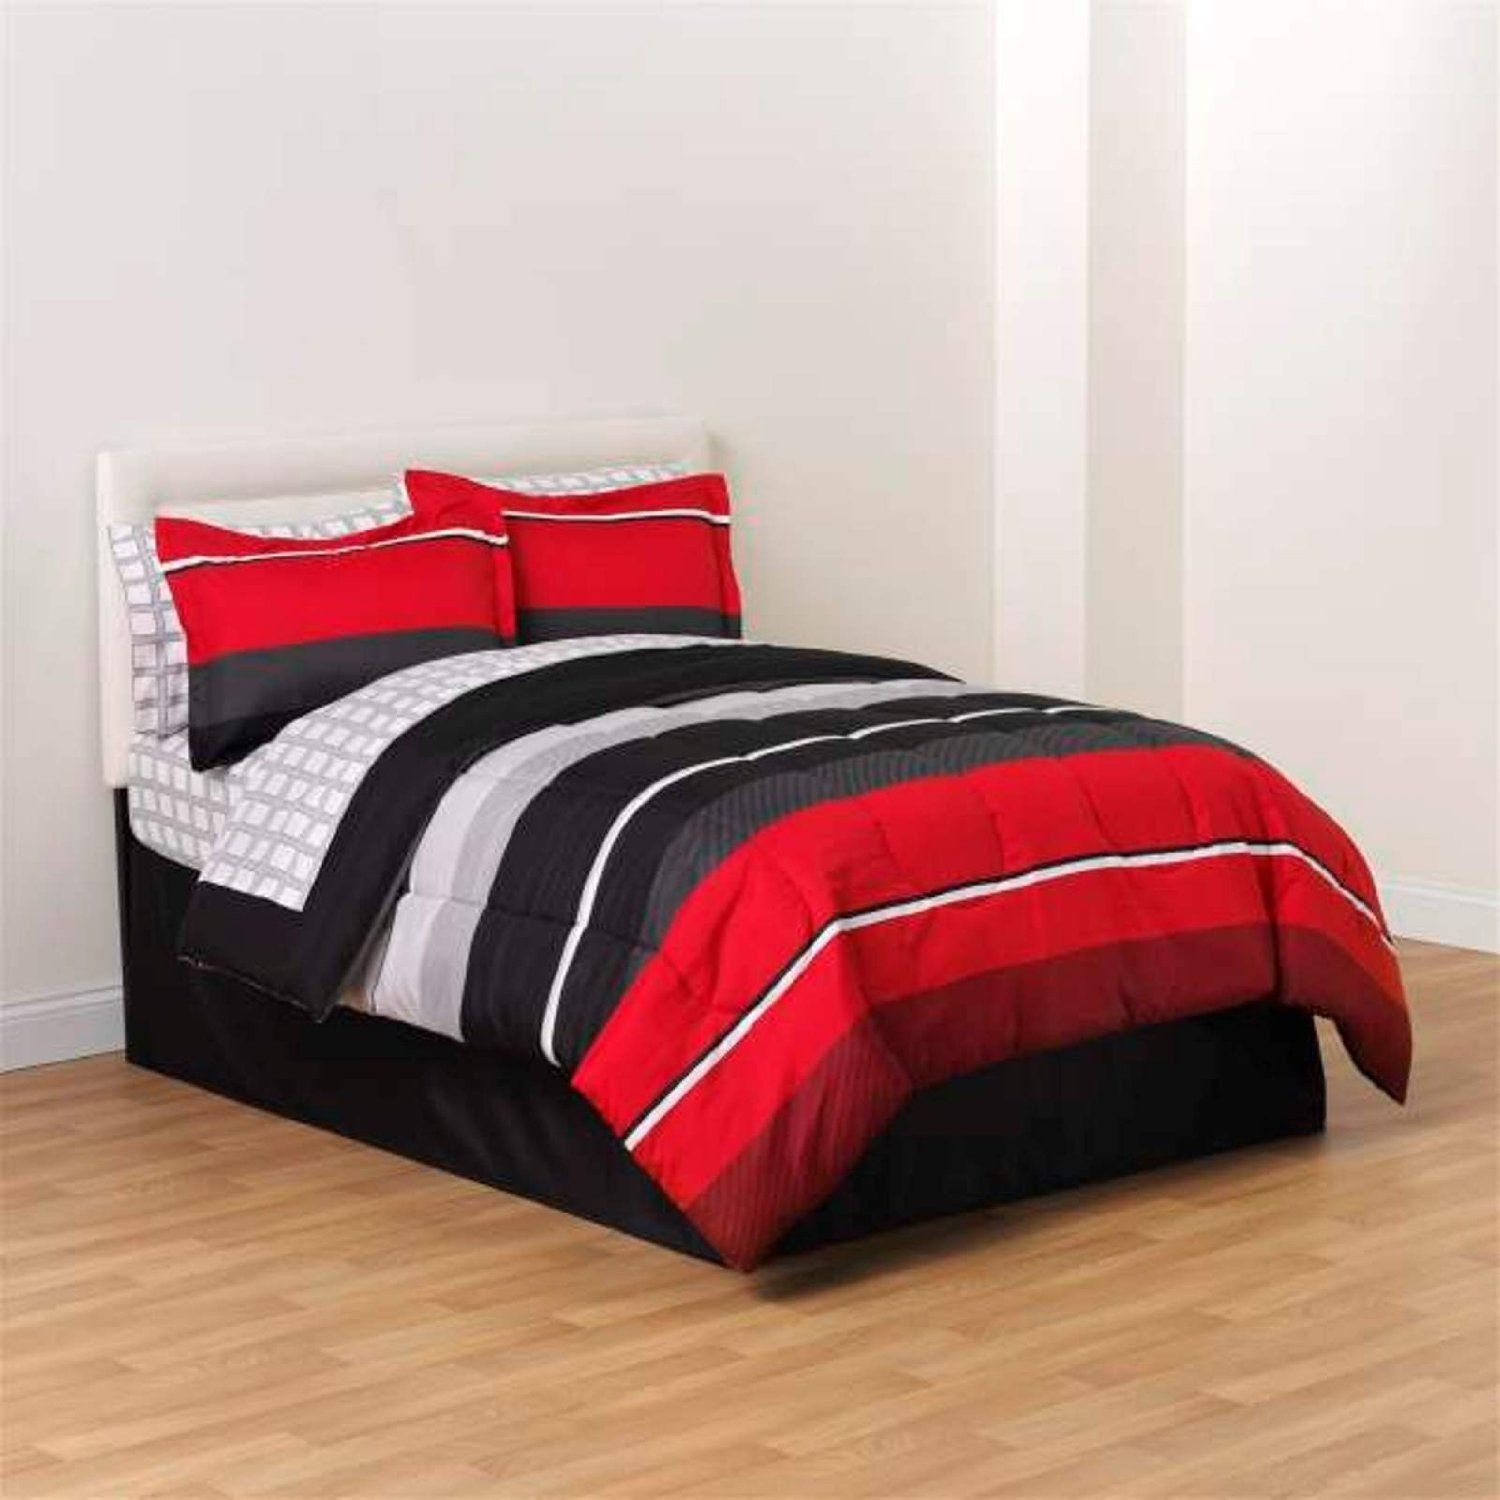 red black white gray rugby boys full comforter skirt and sheet bedding set 8